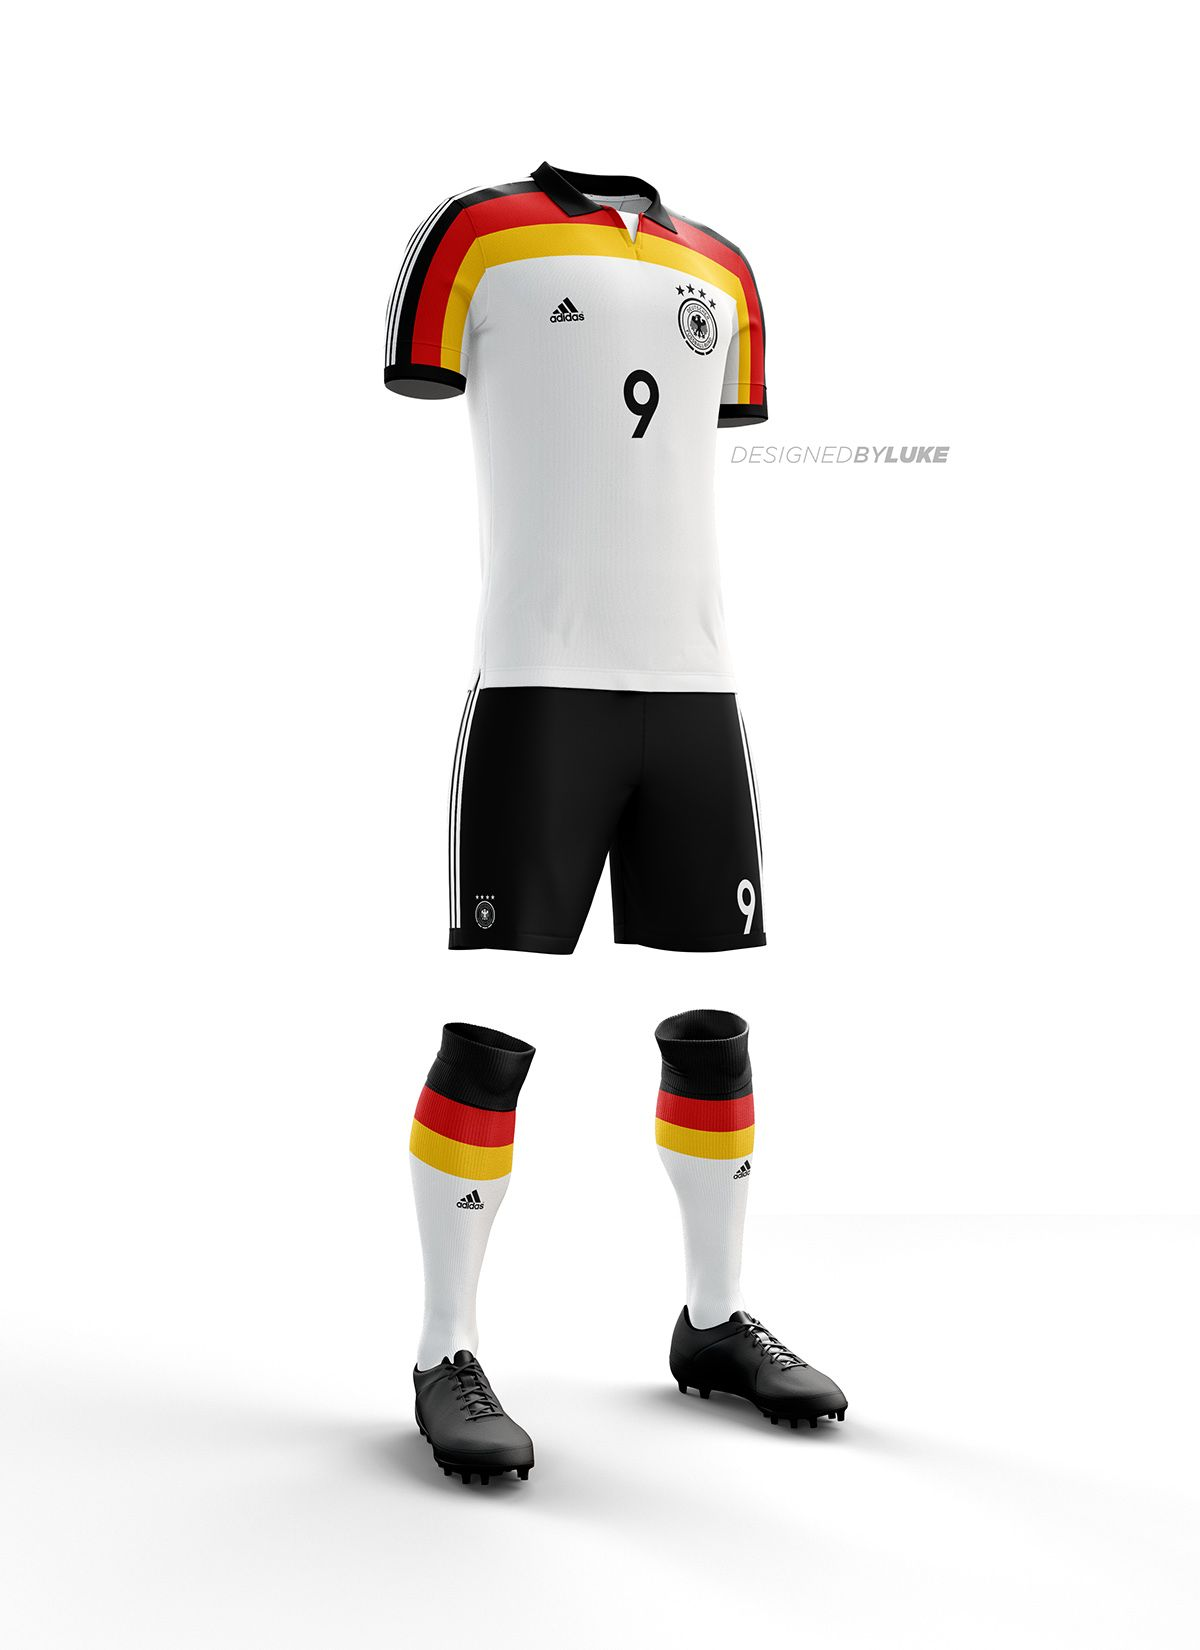 dd5f5b6f0ef4f My visions on what some of football s most famous clubs and countries should  wear in matches. Hope you like them!